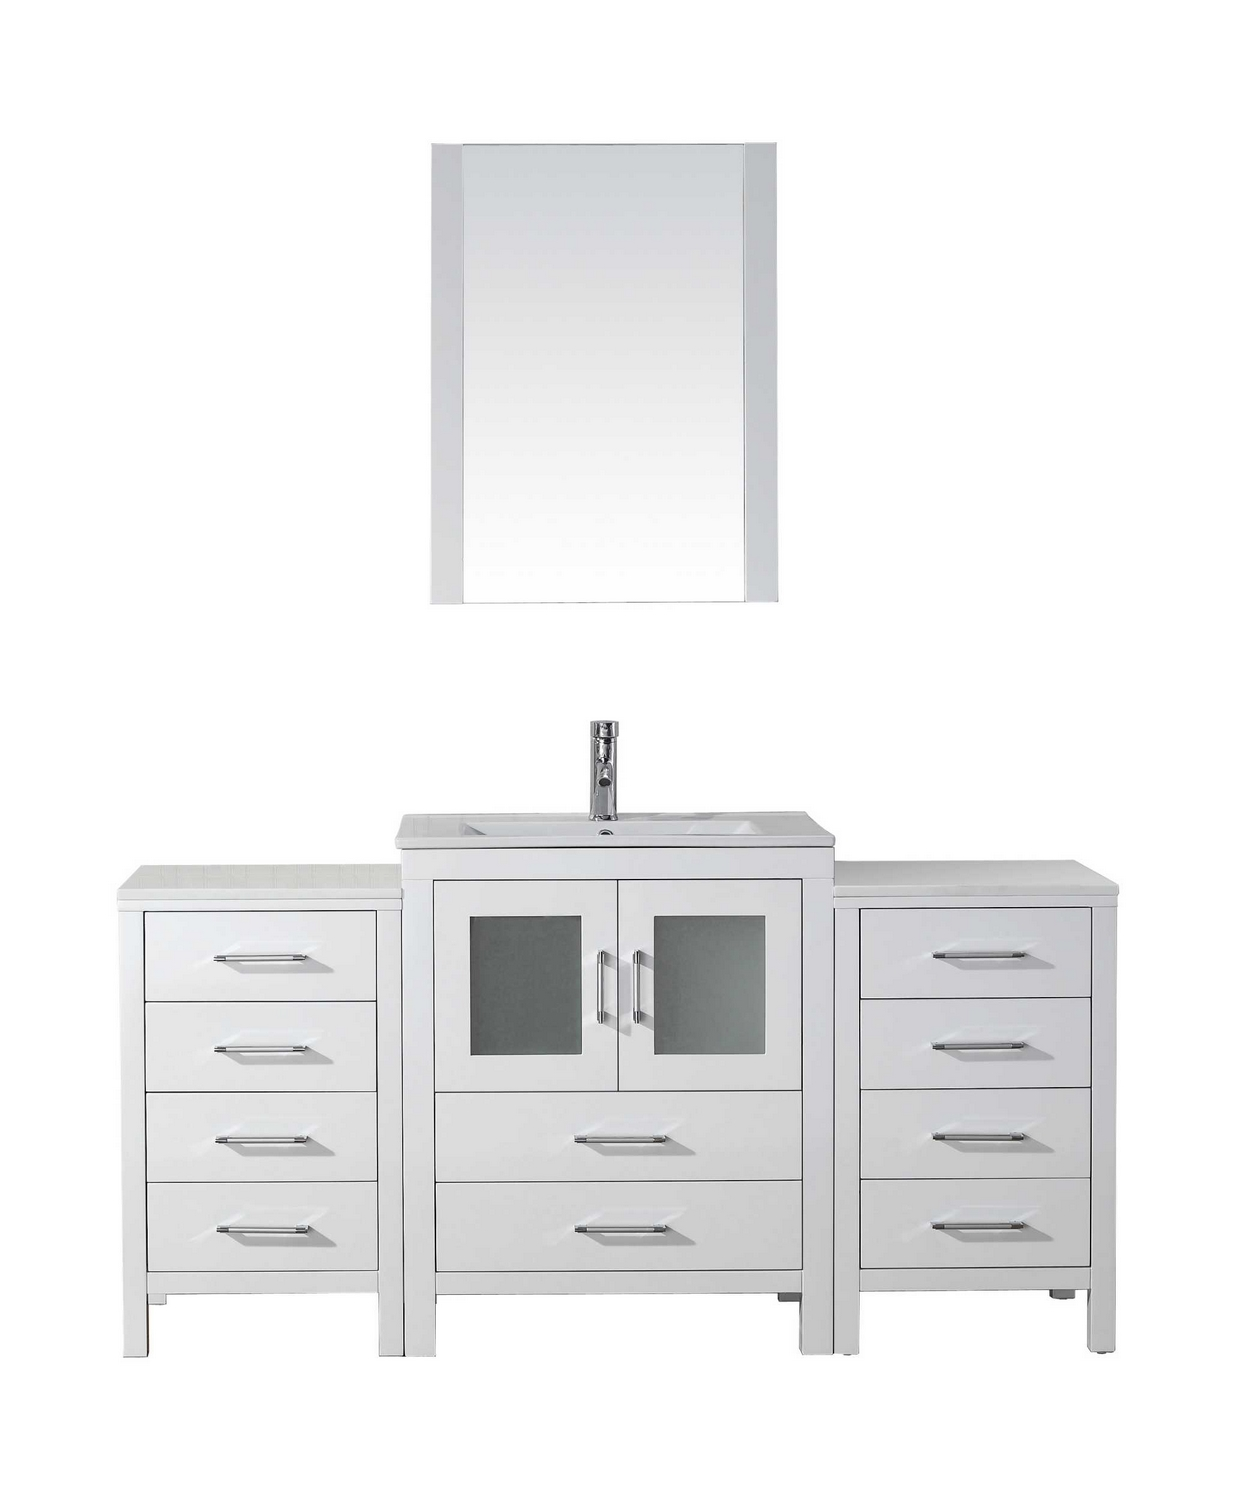 Virtu Usa Dior 64 Single Bathroom Vanity Cabinet Set In